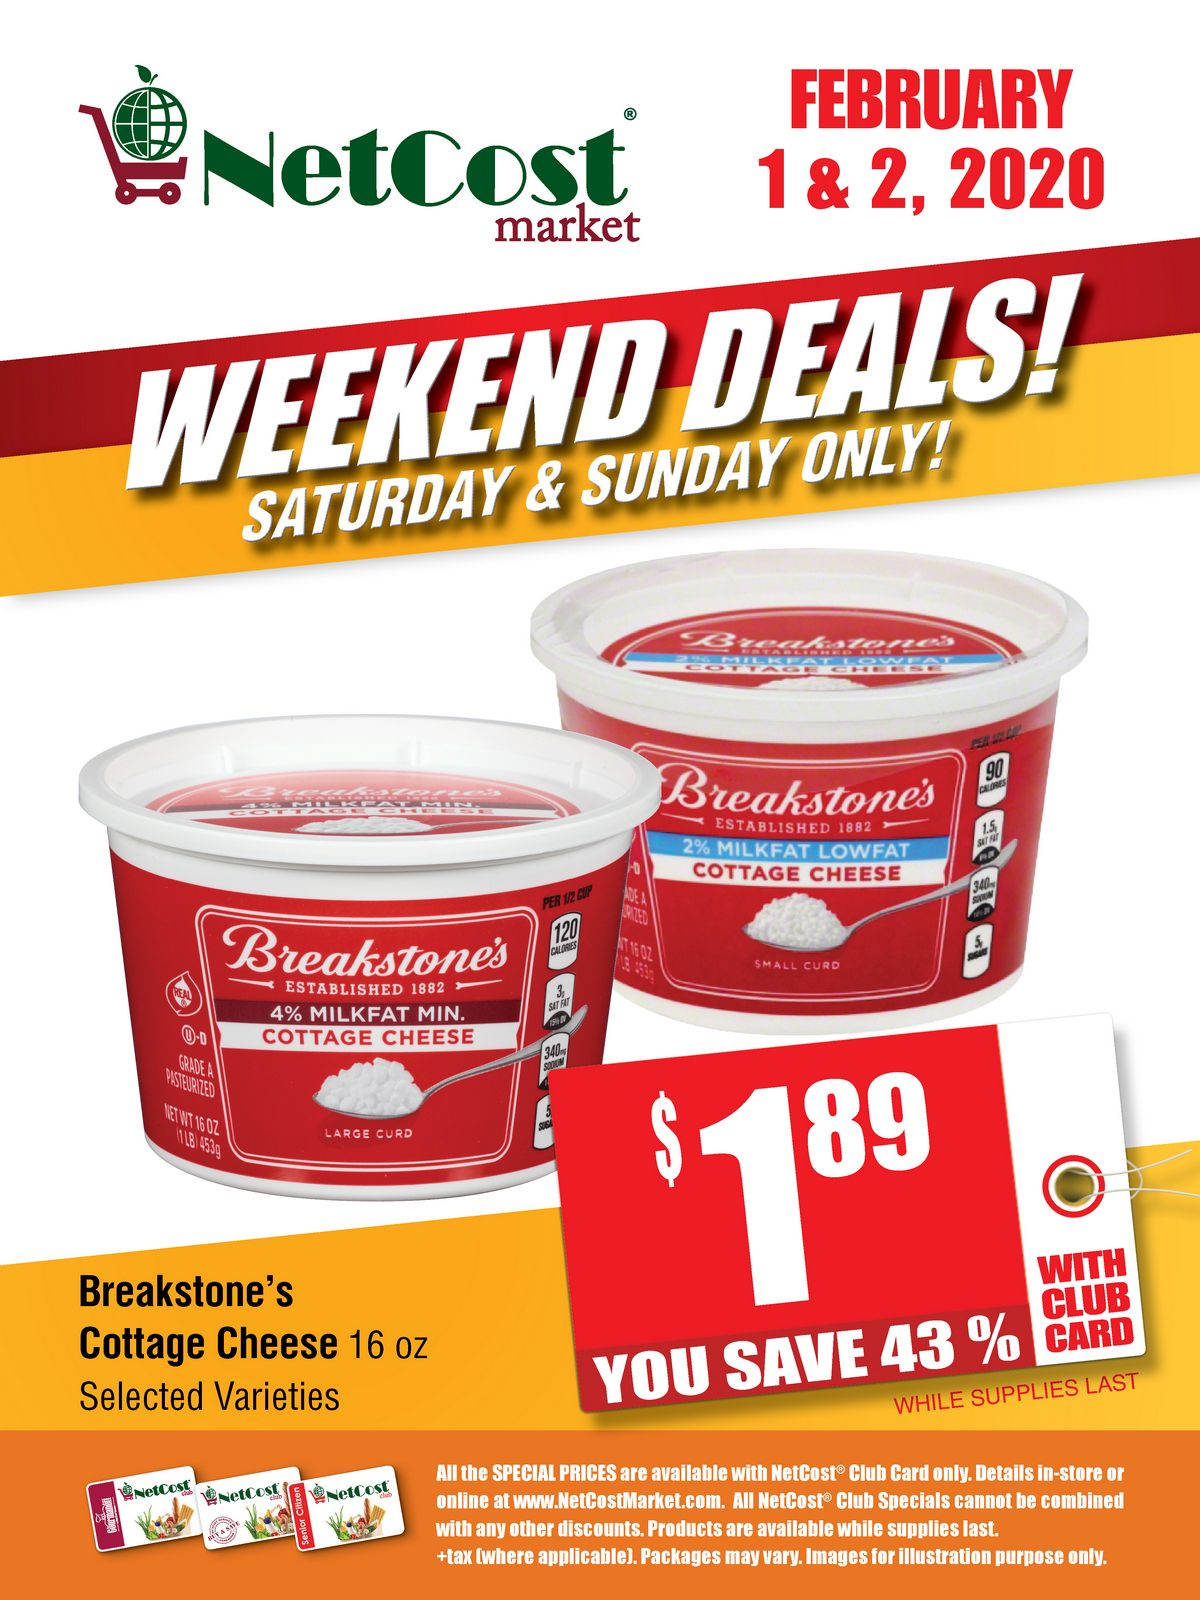 Heads Up For The Weekend Get 43 Off Breakstone S Cottage Cheese With Your Netcost Club Card Browse More O In 2020 Breakstone Cottage Cheese Club Card Cottage Cheese